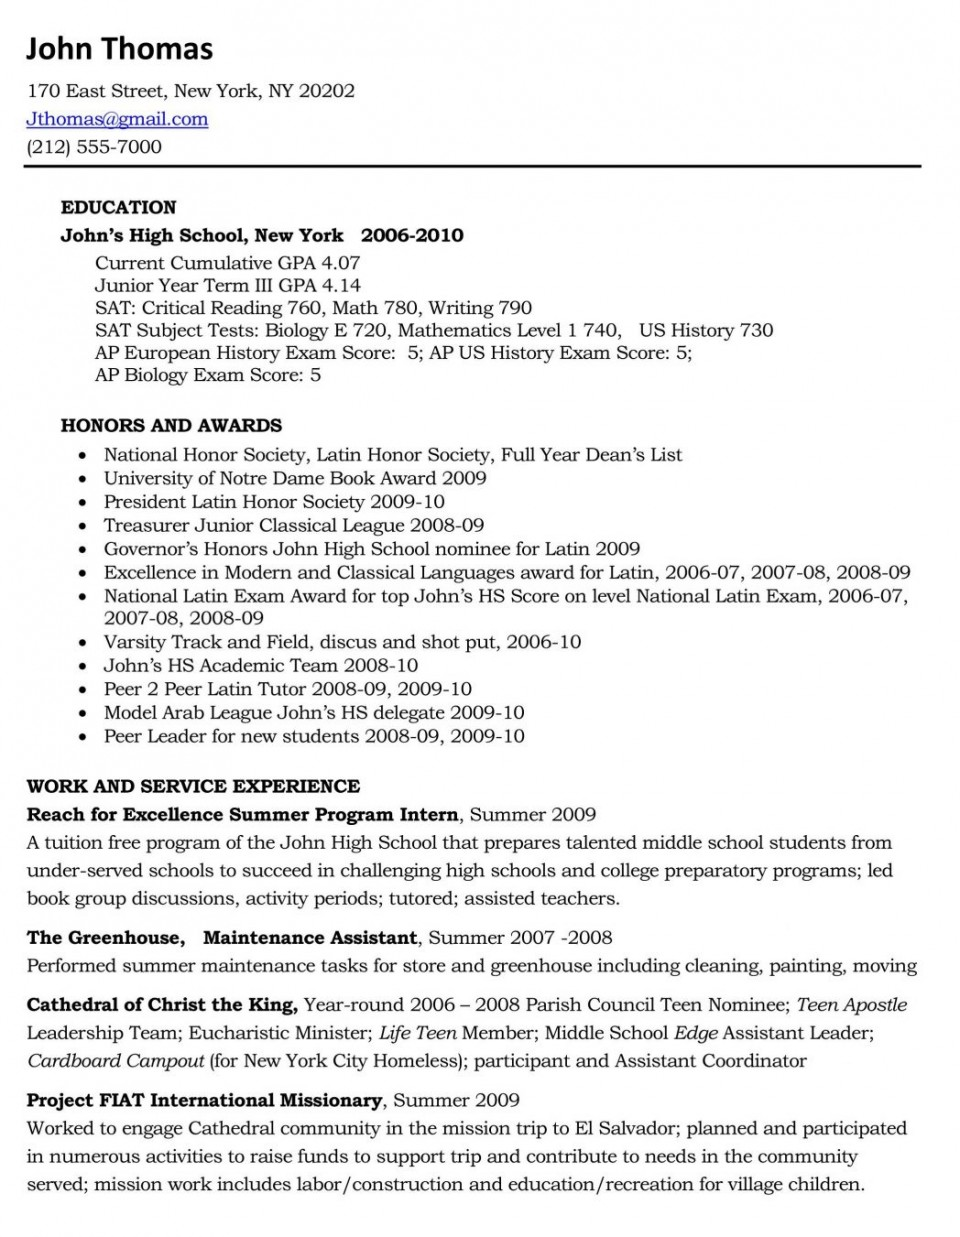 008 Essay On Texting Resume Jpg Persuasive While Driving Ou Outline And 1048x1351 Singular Essays Argumentative 960